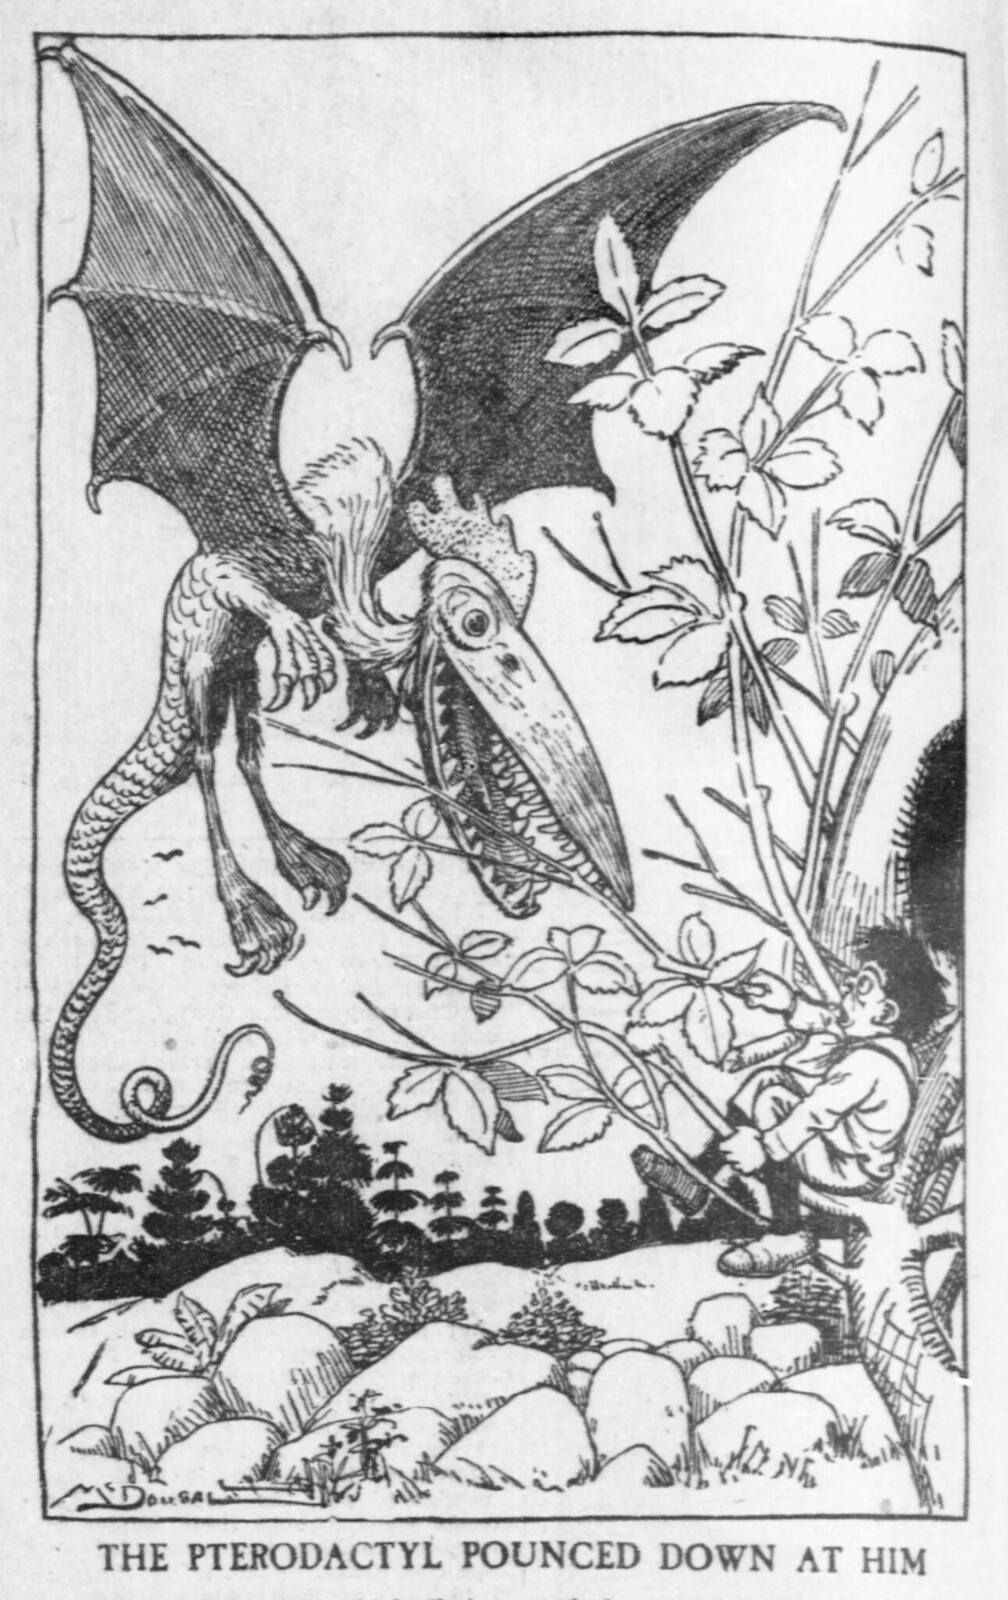 Walt McDougall - The Salt Lake herald., May 18, 1902, The Pterodactyl Pounced Down At Him